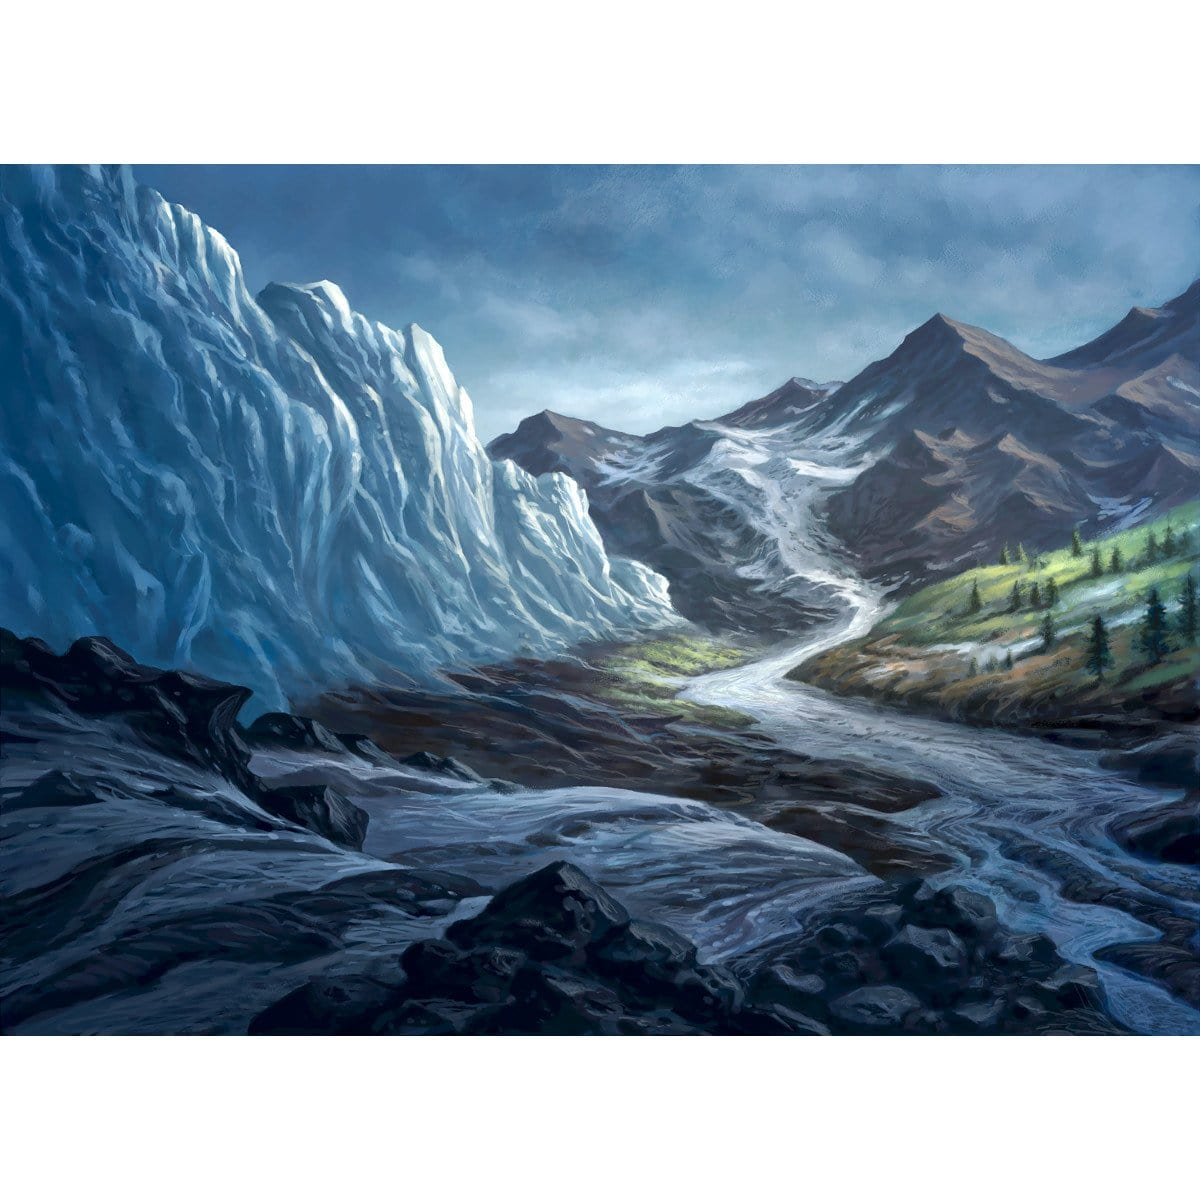 Thawing Glaciers Print - Print - Original Magic Art - Accessories for Magic the Gathering and other card games